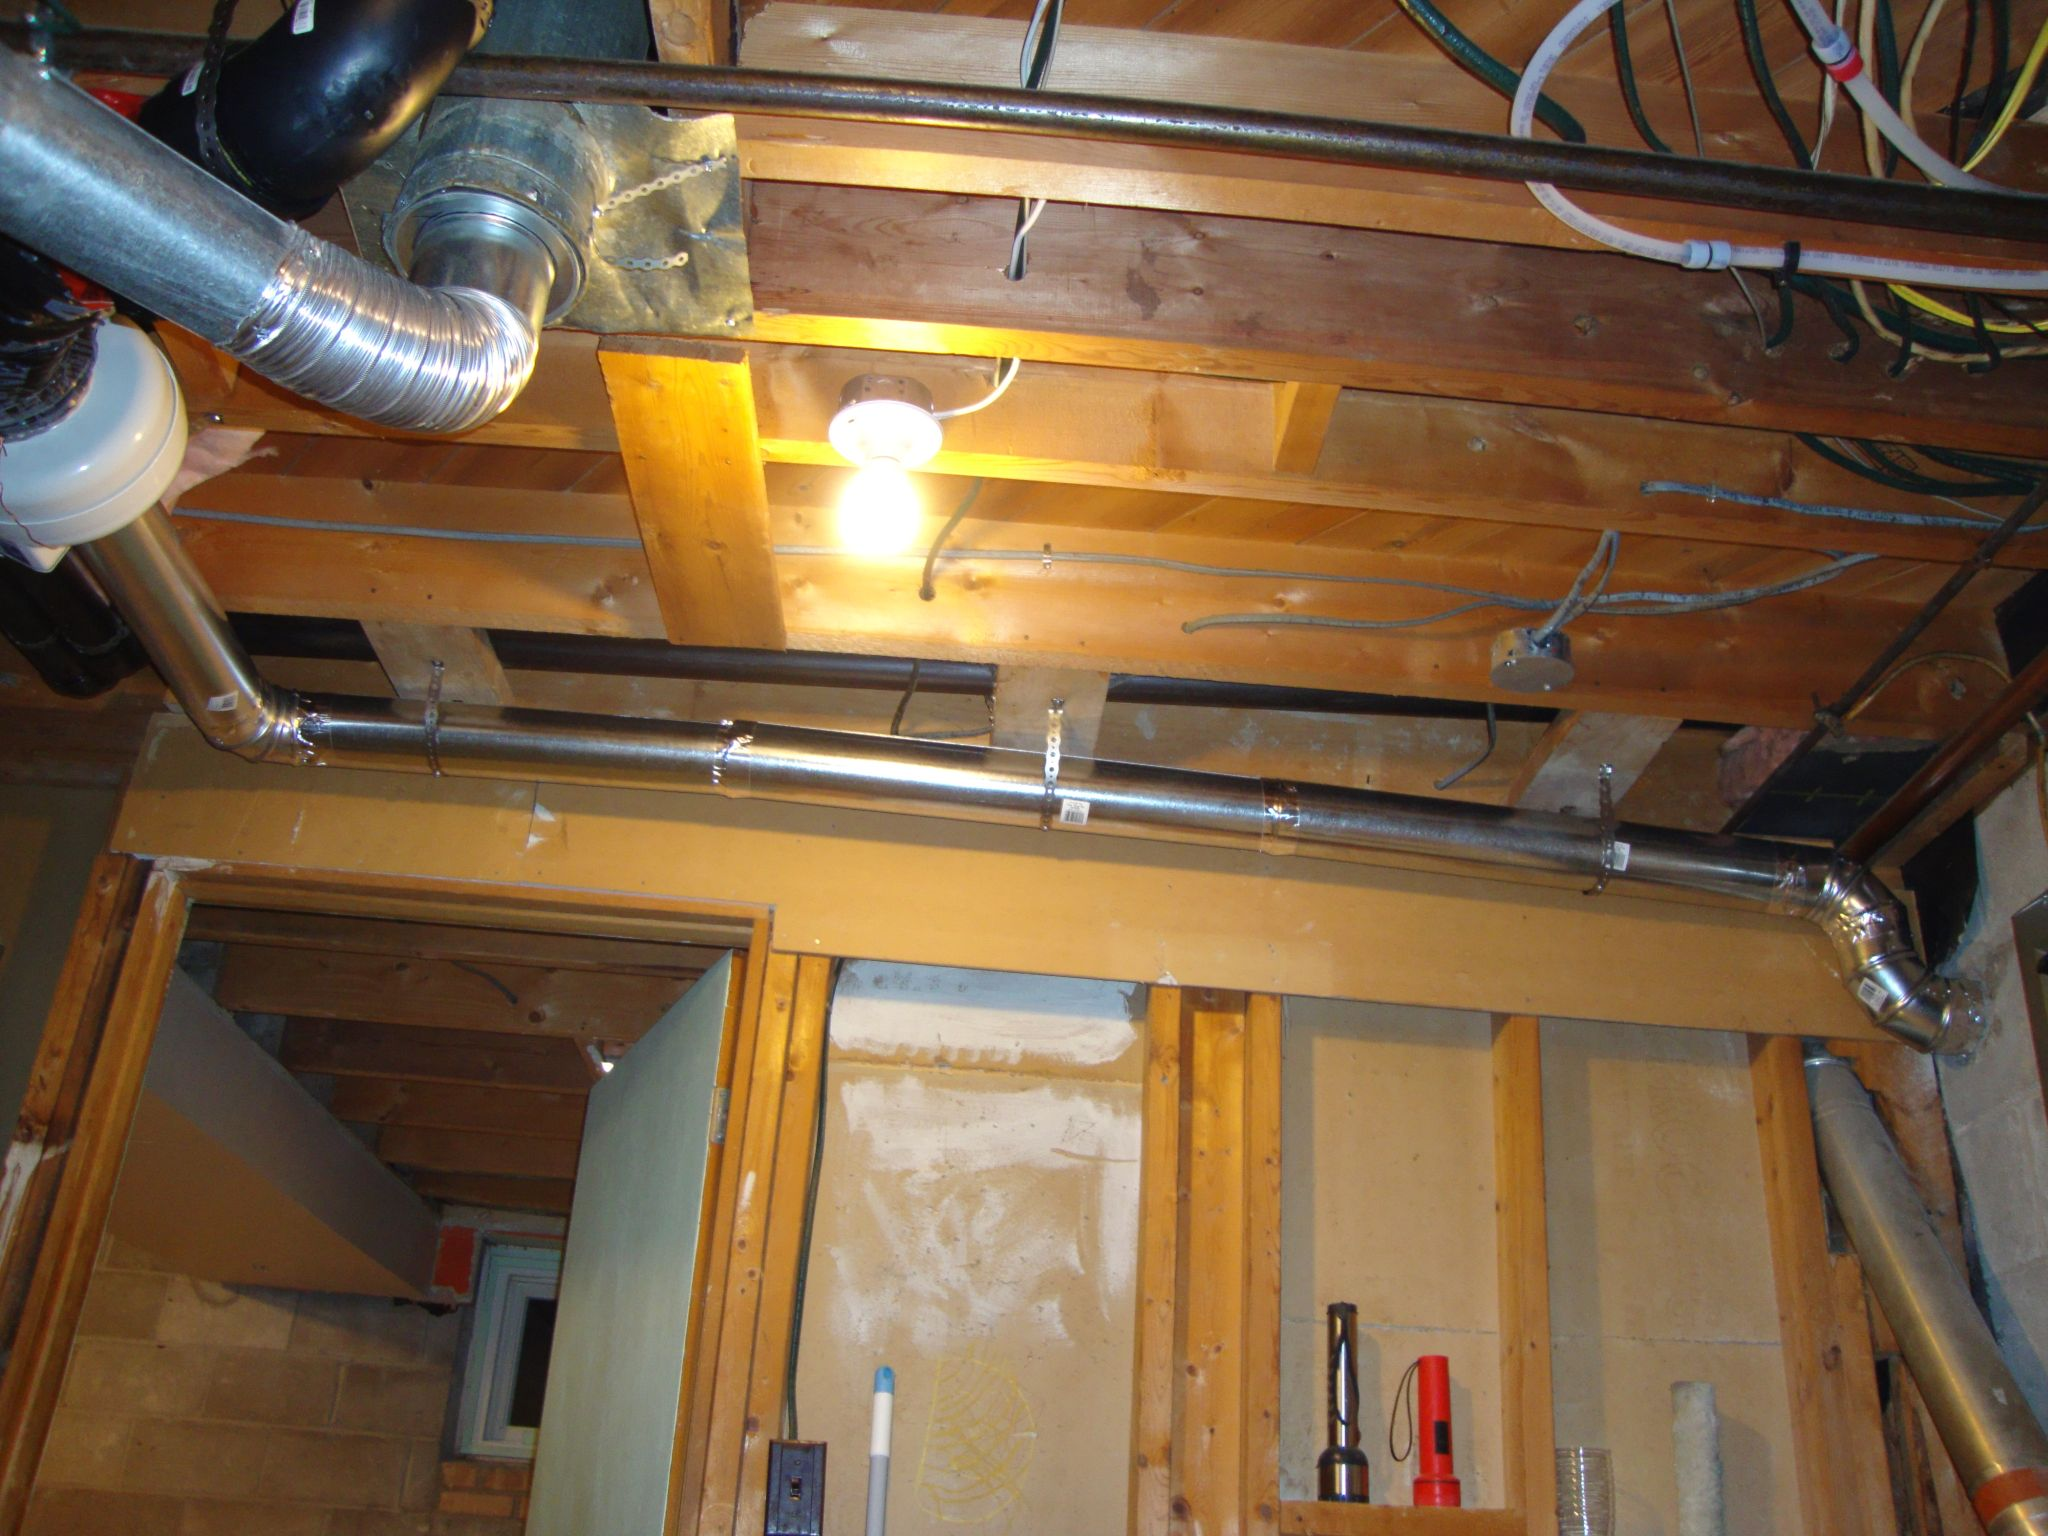 Bathroom fan venting into attic - This Image Has Been Resized Click This Bar To View The Full Image